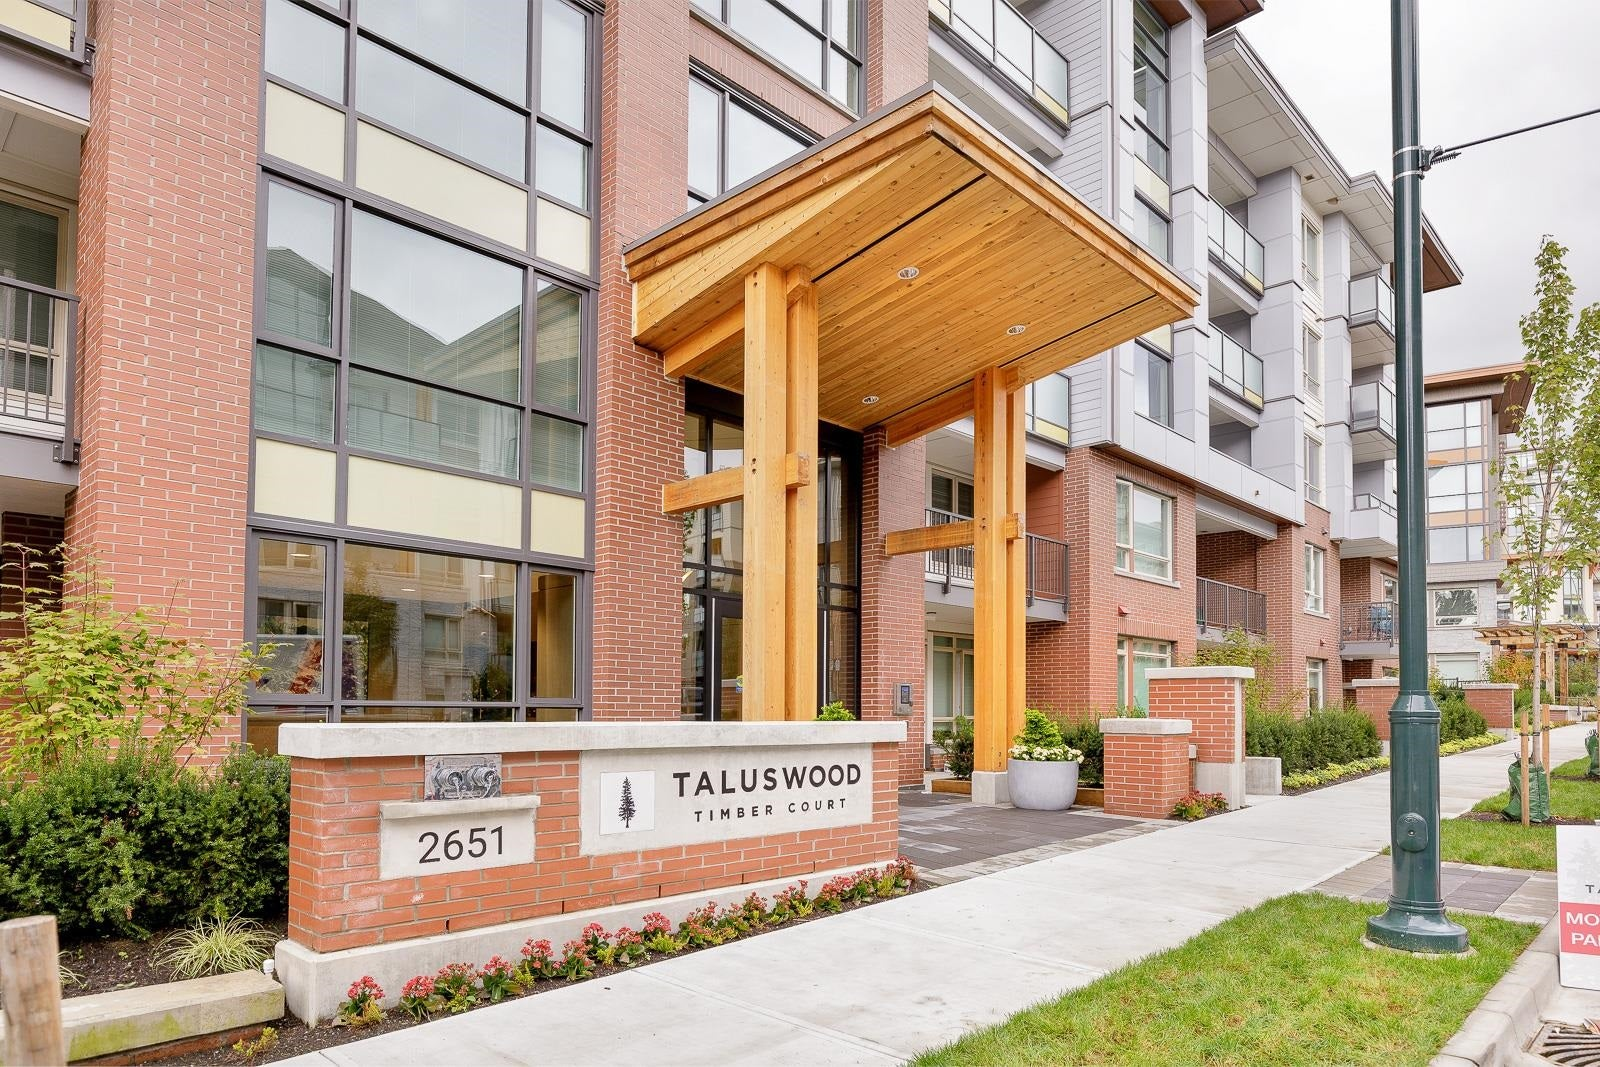 113 2651 LIBRARY LANE LANE - Lynn Valley Apartment/Condo for sale, 2 Bedrooms (R2620549) - #1